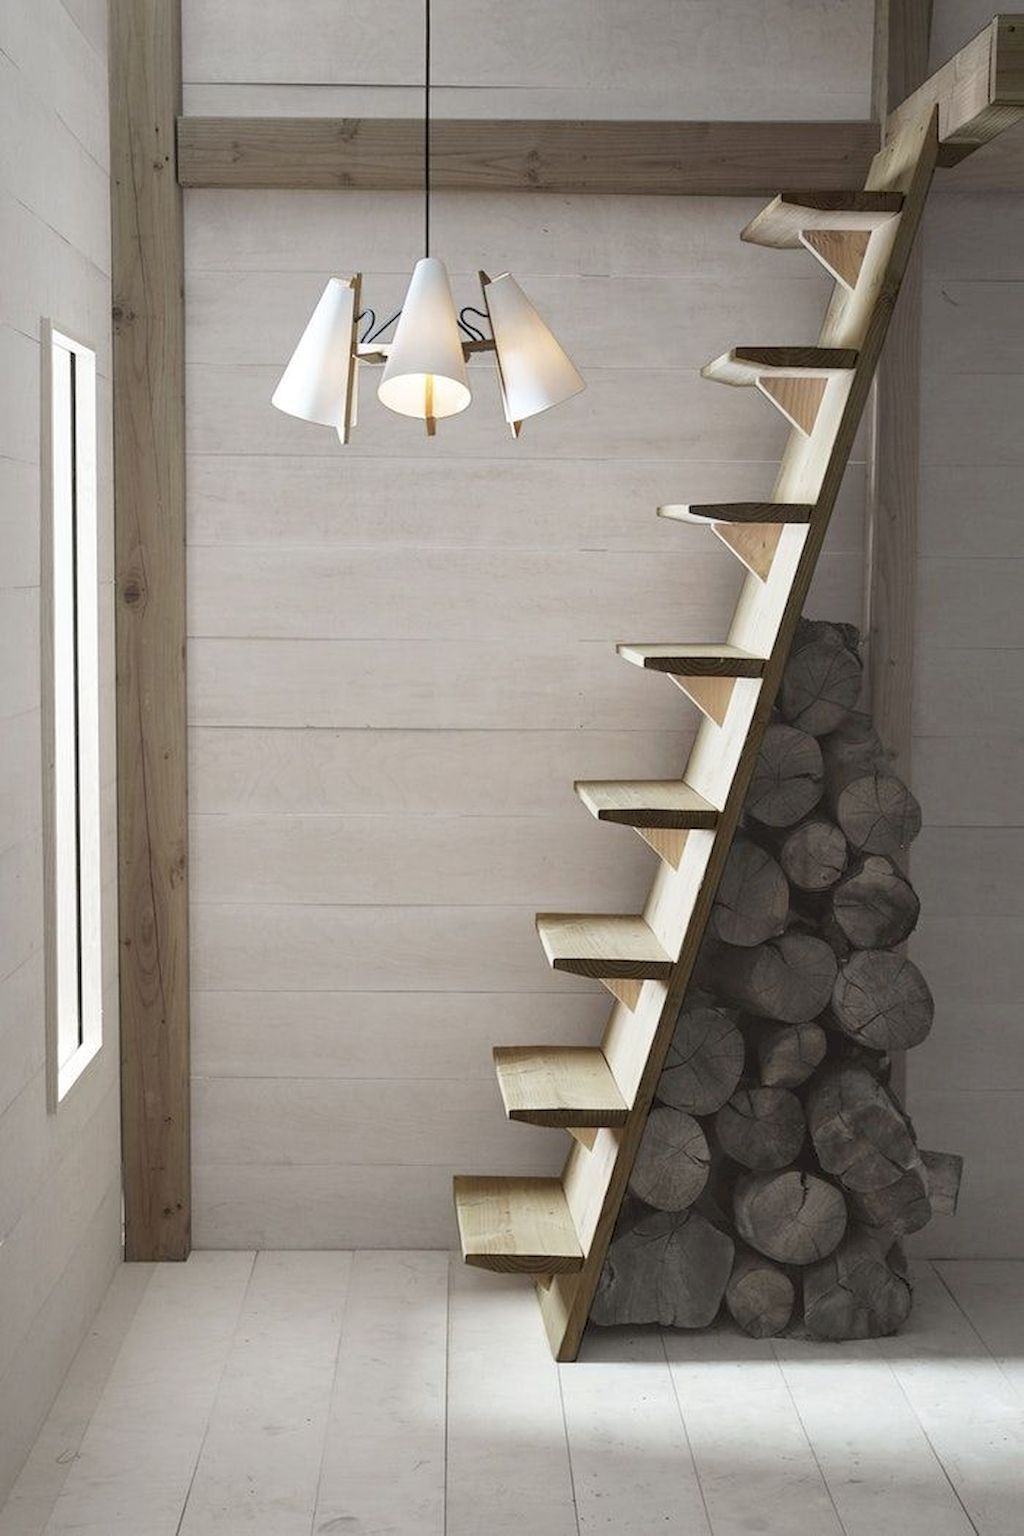 70 Clever Loft Stair Design for Tiny House Ideas - Insidexterior #tinyhousestorage